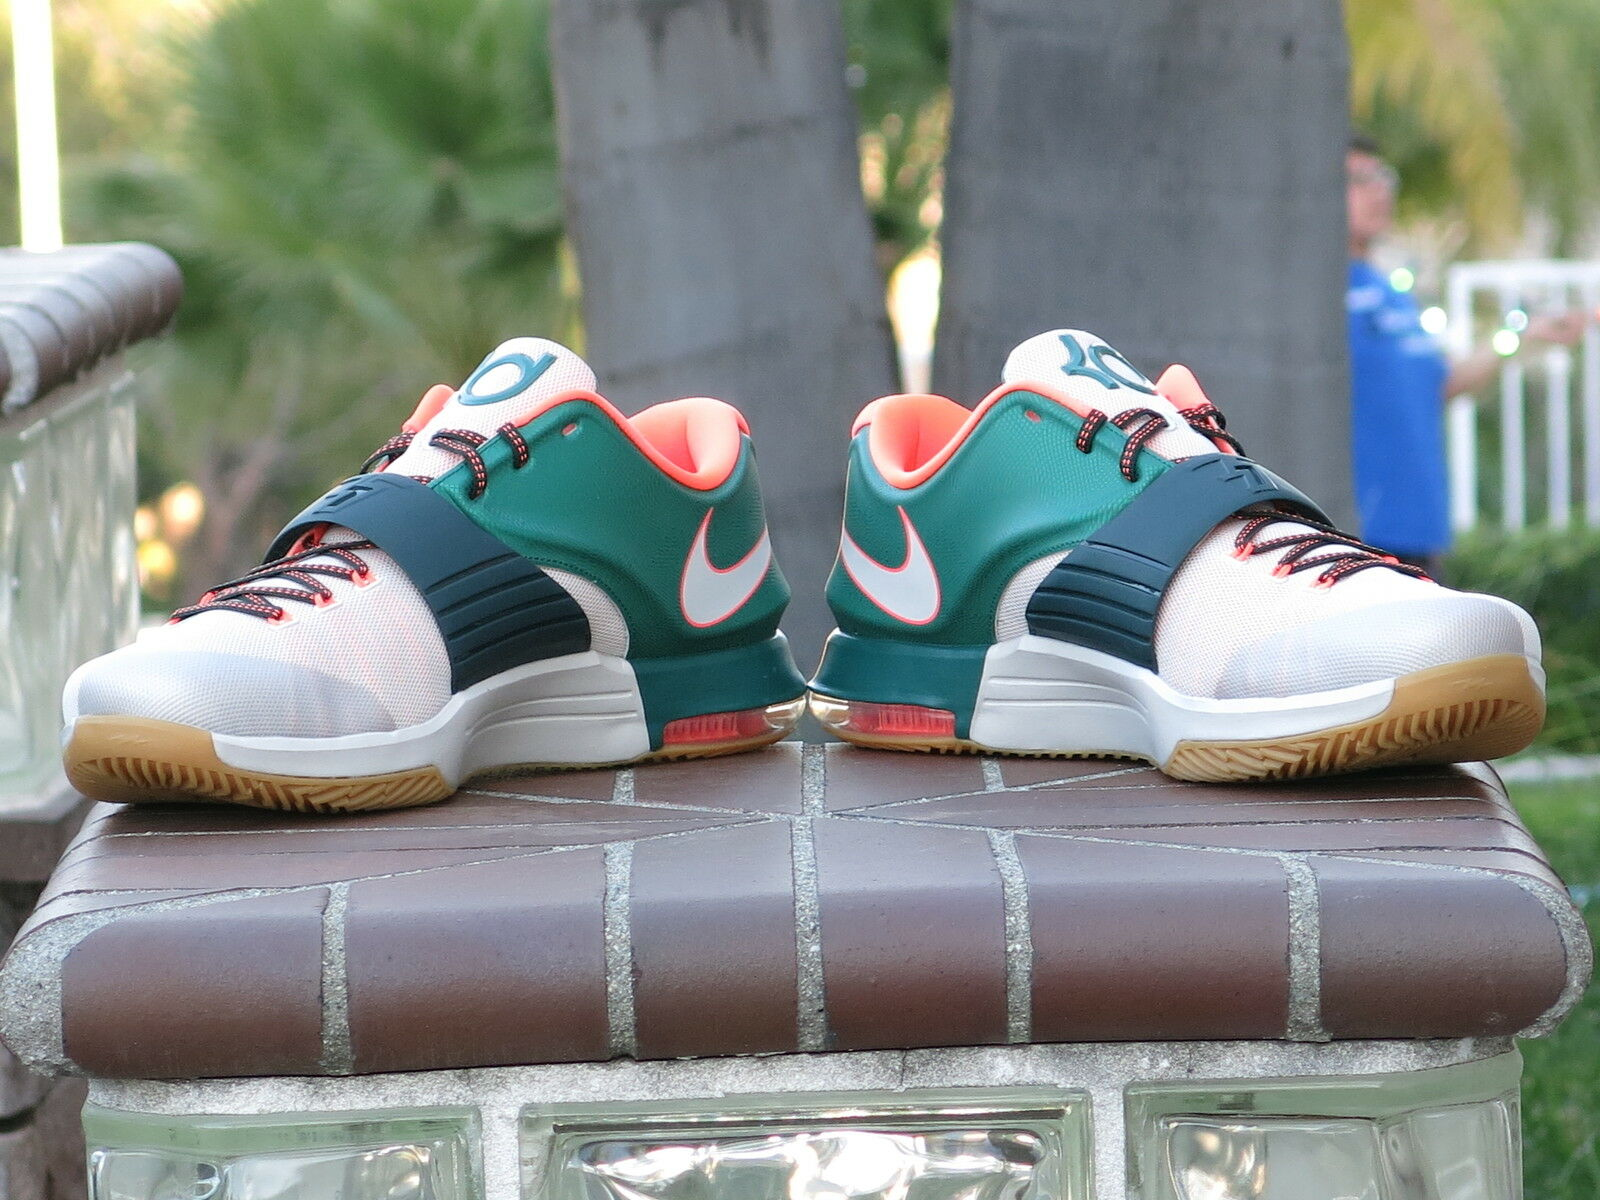 897deae6b2d1 ... Nike Kevin Durant KD VII VII VII 7 Miami Easy    Men s Basketball Shoes  653996 ...